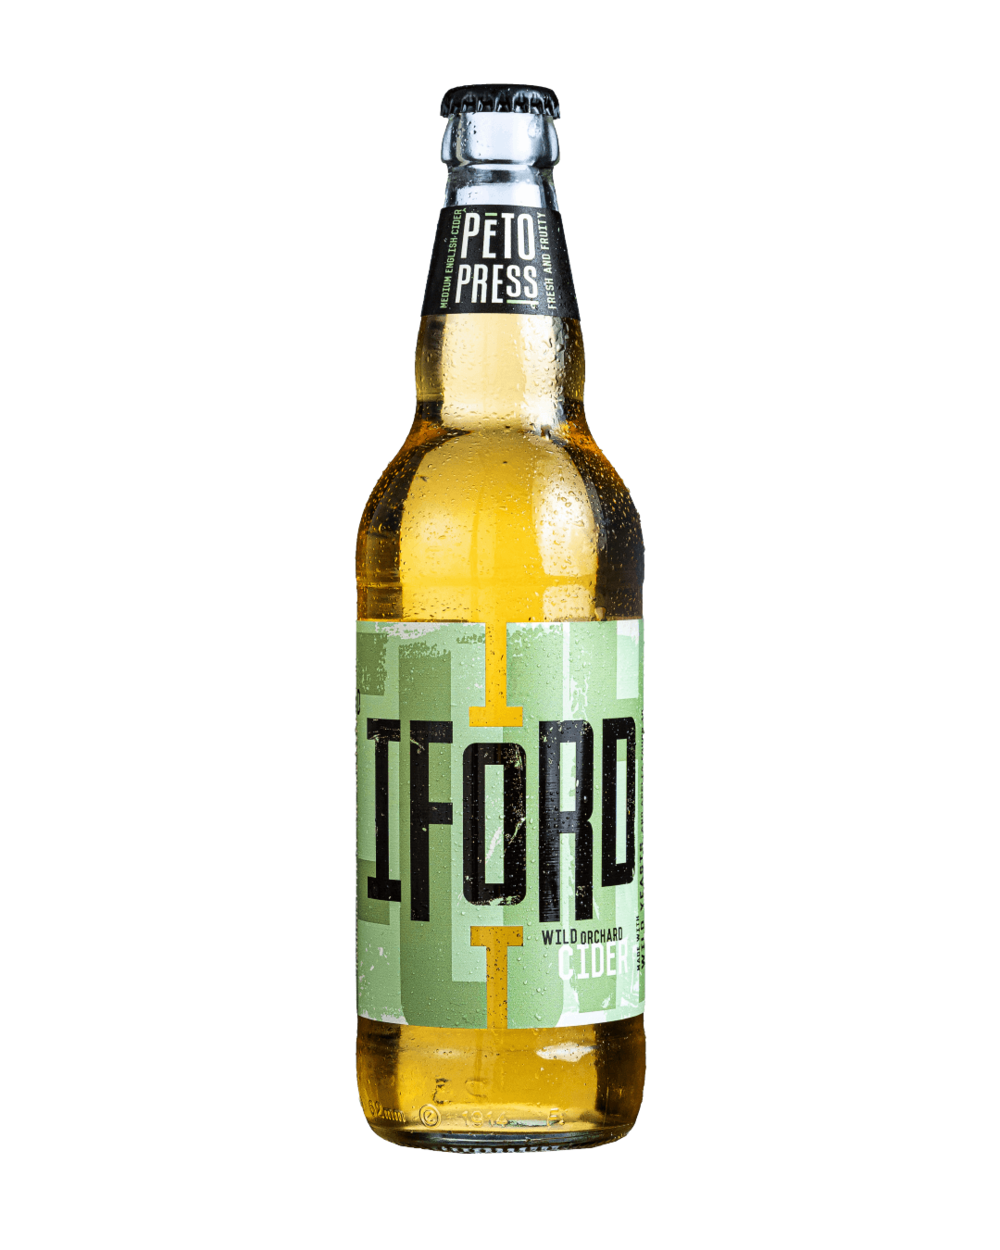 Iford - Peto Press / Cider / 4.7% / 500ml